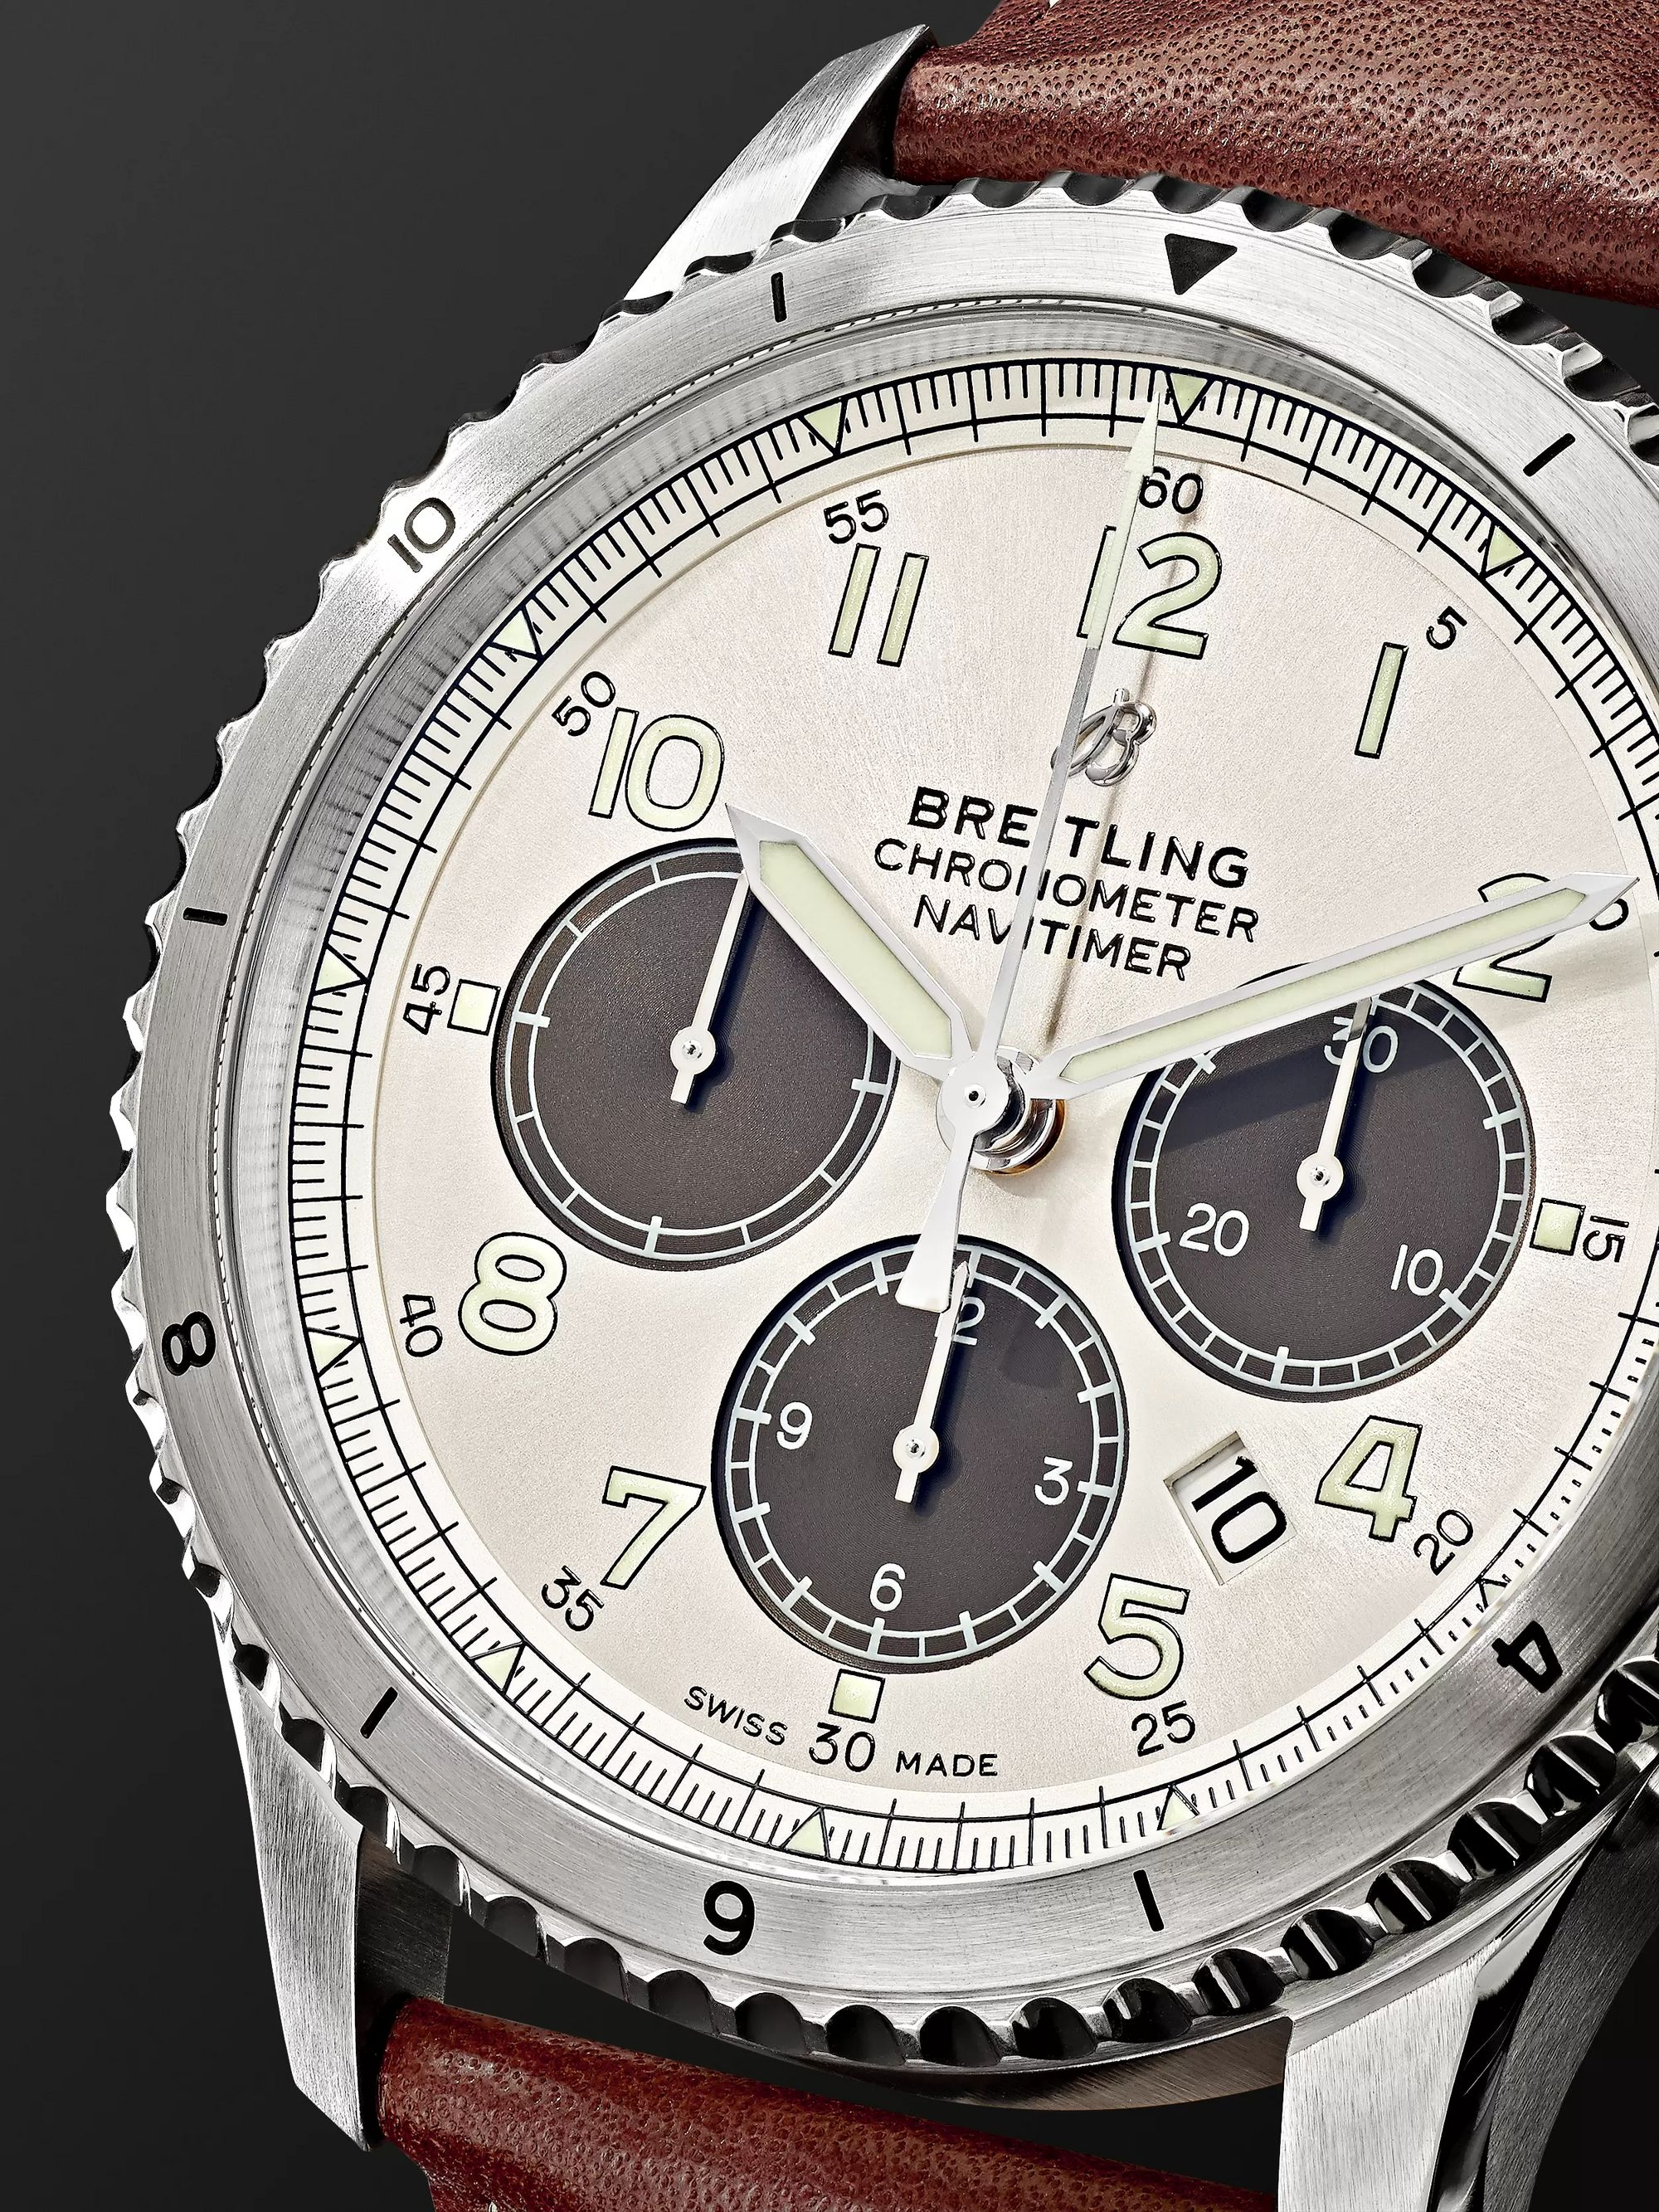 Breitling Navitimer 8 B01 Chronograph 43mm Stainless Steel and Leather Watch, Ref. No. AB01171A1G1X1